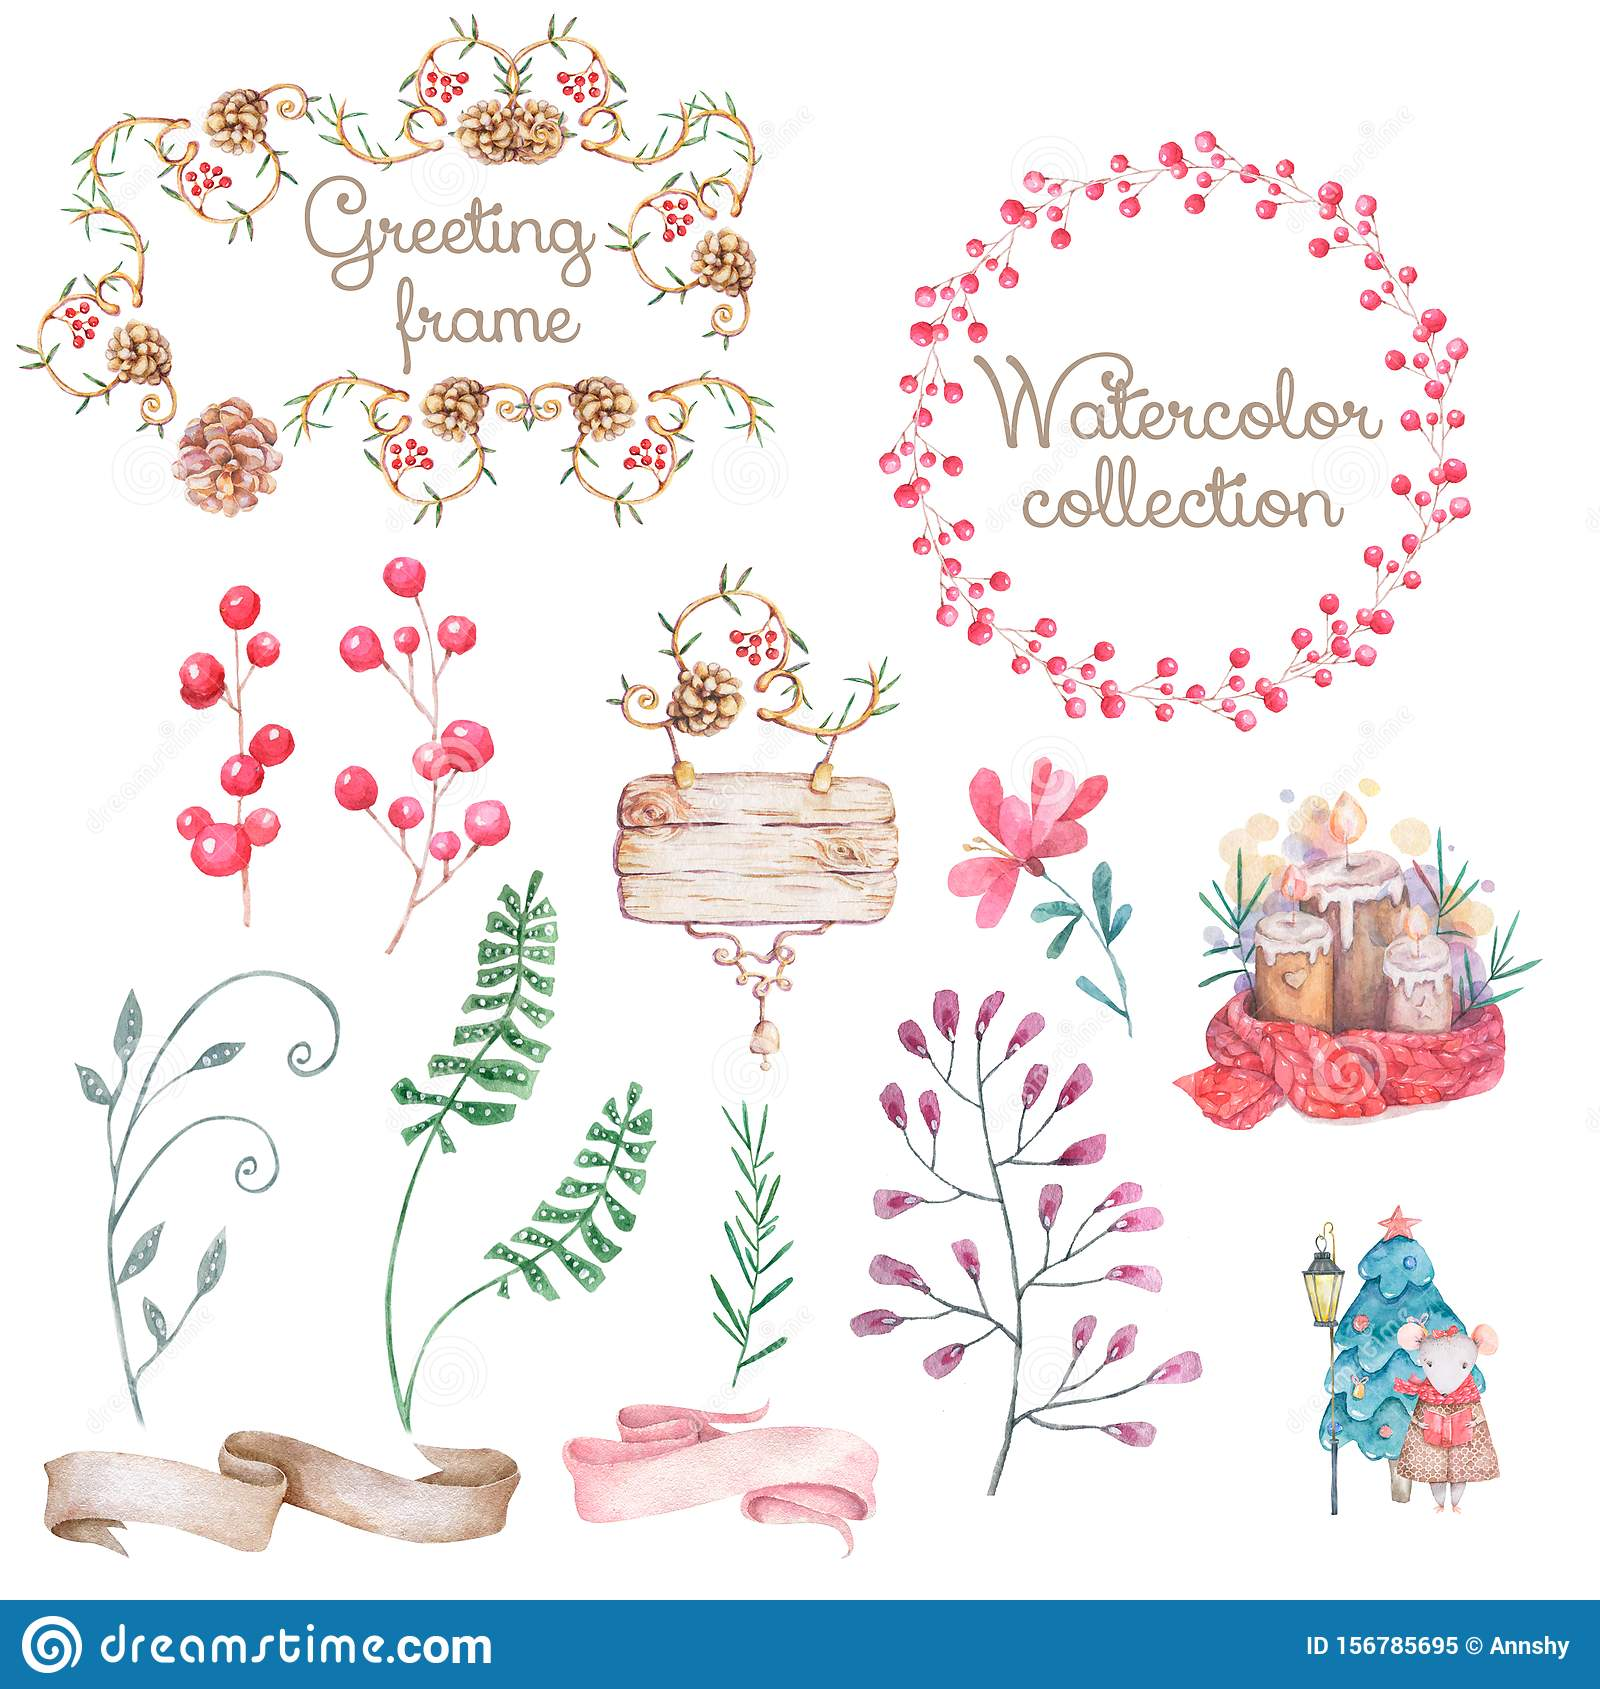 Light Merry Christmas watercolor floral background with natural tree branches and cones in hand drawn style illustration. Greeting